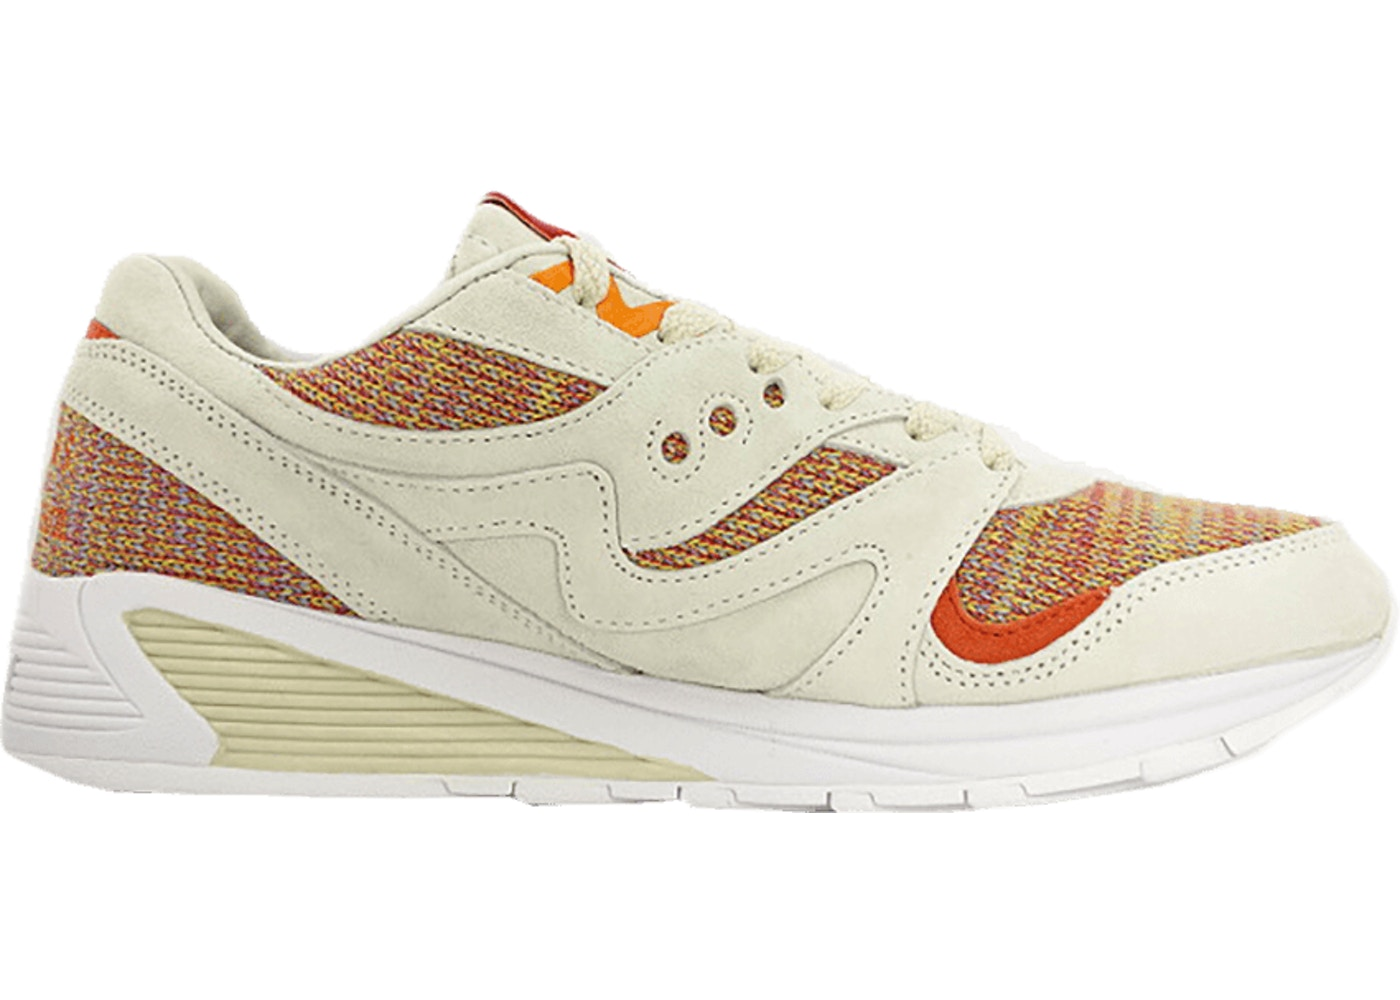 Saucony Shoes Average Sale Price